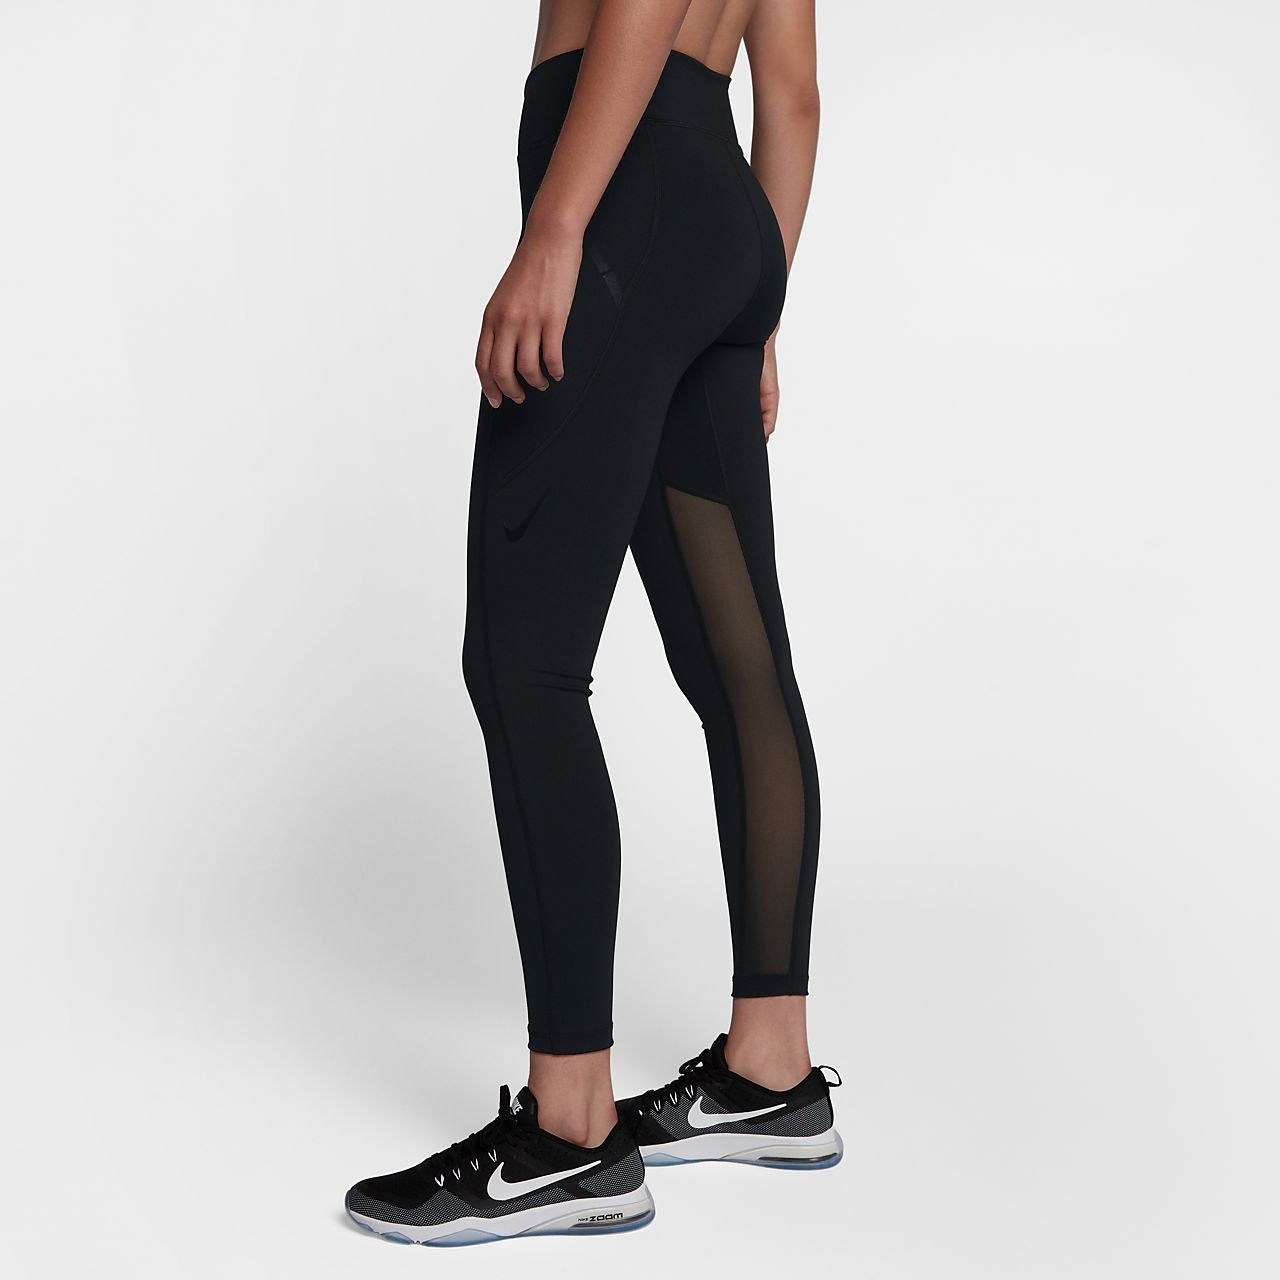 Nike Power Pocket Lux Women's High-Waist Training Tights